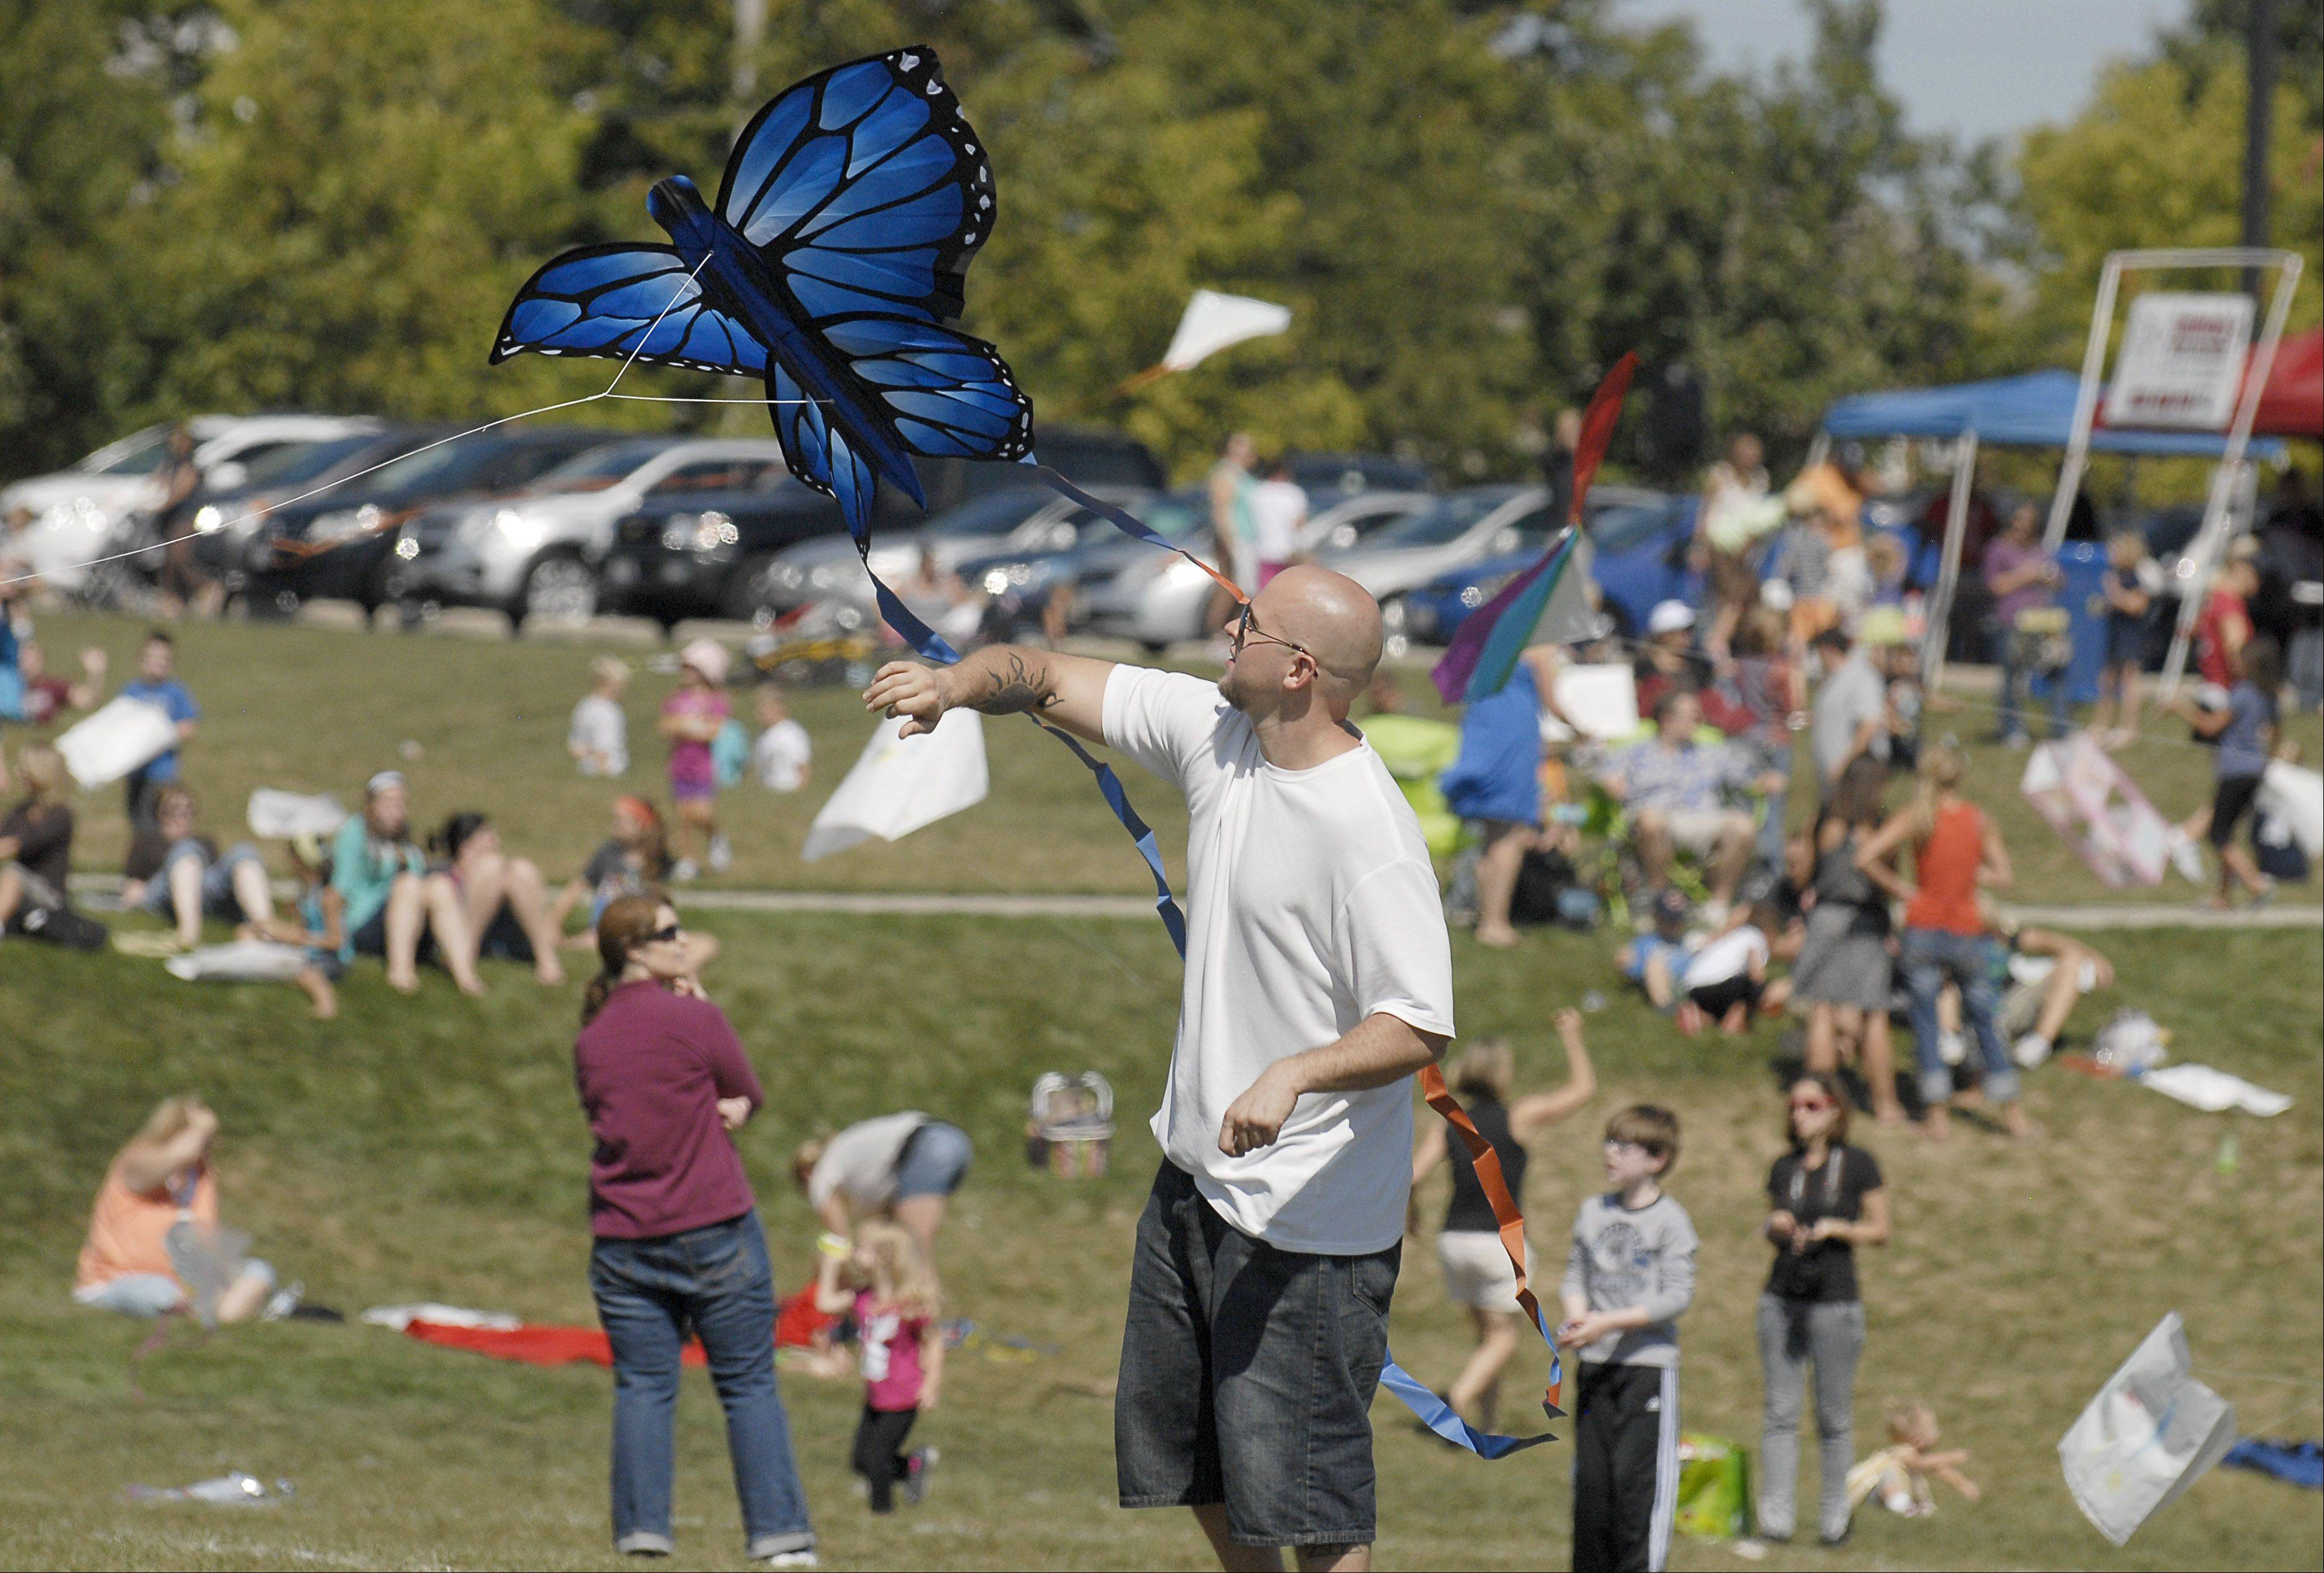 Parents and children dot the landscape as they attempt to get their kites airborne on Saturday during the Geneva Park District's annual Kite Festival at Peck Farm Park.